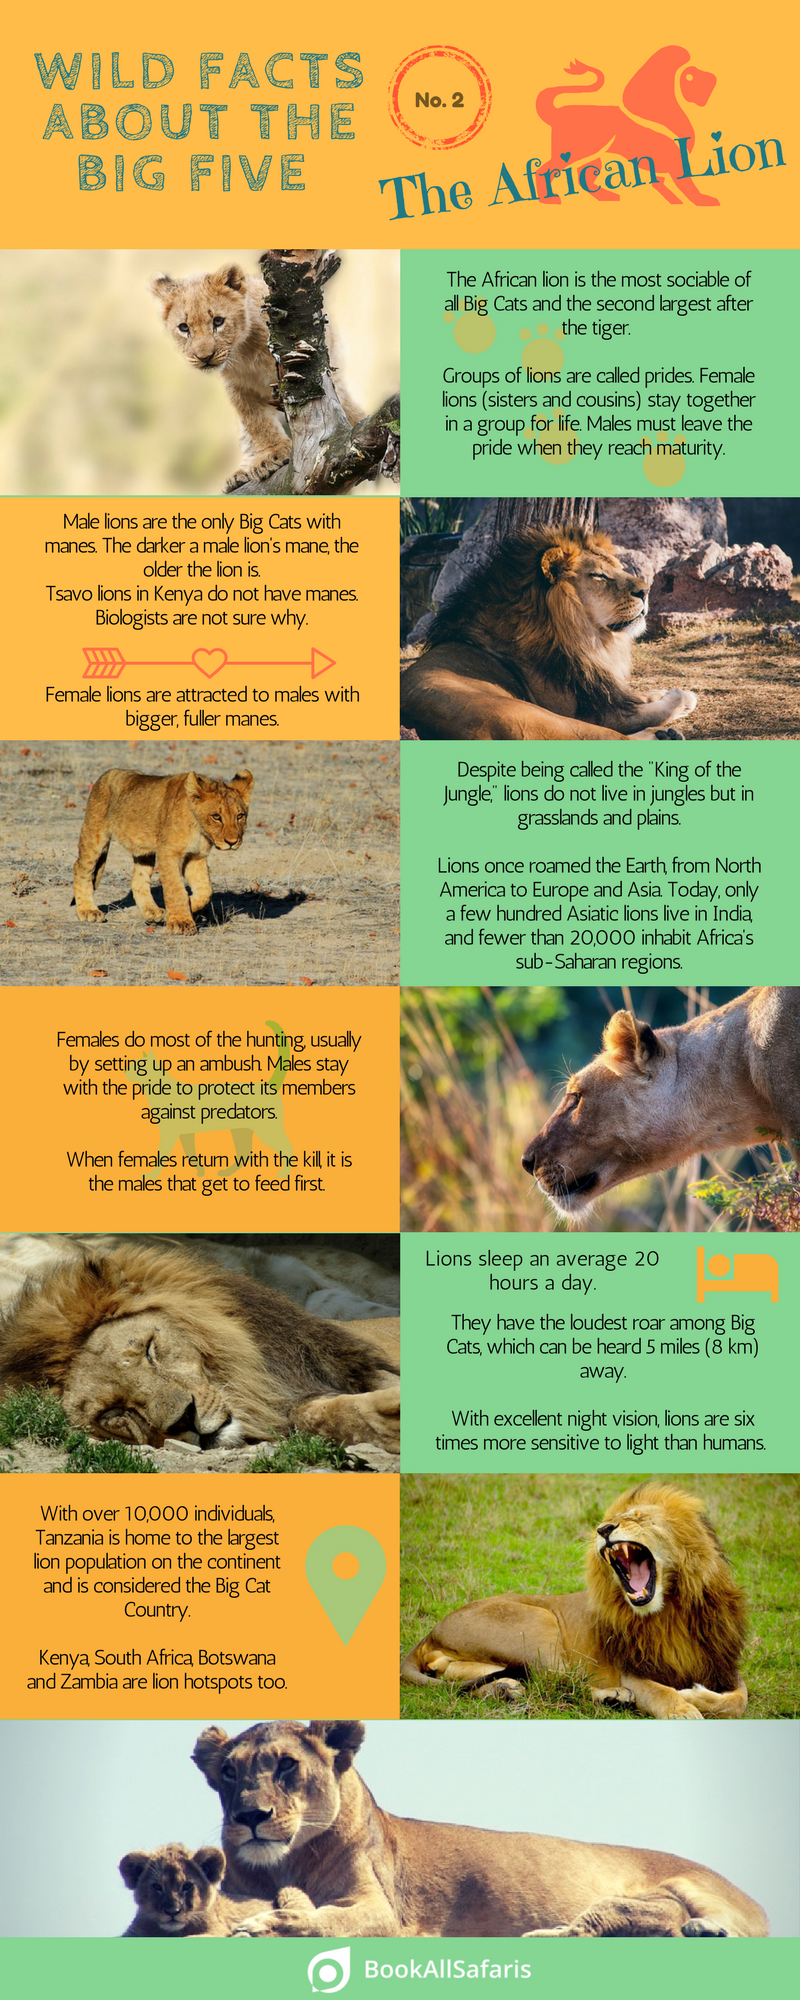 facts about the big five the big five facts big five animals facts facts about the big 5 africa safari animals african big 5 african big five wildlife safari africa big 5 south africa big five south africa big 5 animals in africa big five animals africa african plains game africa wildlife safari elephant safari africa africa safari big 5 africa big game animals big five kenya big 5 kenya big 5 animals in south africa big five animals in kenya the big 5 animals in africa lion and safari park johannesburg big five animals in south africa africas big five kenya safari animals best time to visit africa for wildlife big five cape town big 5 safari south africa lion safari park johannesburg the big five animals in south africa the big five animals in africa african plains game list big 5 safari animals south africa big five tanzania big five animals in tanzania lion and safari park south africa south africa wildlife safari big 5 african game animals botswana elephant safari the big 5 animals in south africa african plains game animals big 5 safari kenya big five african game animals best wildlife in africa lion safari park south africa wildlife safari south africa south african game animals big five safari south africa namibia wildlife safari big five safari kenya south africa animal safari african big cats safaris lion & safari park johannesburg sa big 5 animals south africa safari animals popular animals in africa south africa wildlife tour packages wildebeest kenya lion safari johannesburg big cats in kenya giraffe safari africa african wildlife tours elephant safari south africa the big 5 safari south africa crater in africa with animals most popular animal in africa out of africa wild animal park the big five animals south africa addo elephant park big 5 animal park cape town the big five animals found in kenya best time to see animals in south africa the big 5 animals south africa south africa animal park lion safari south africa wildlife park south africa lion safa